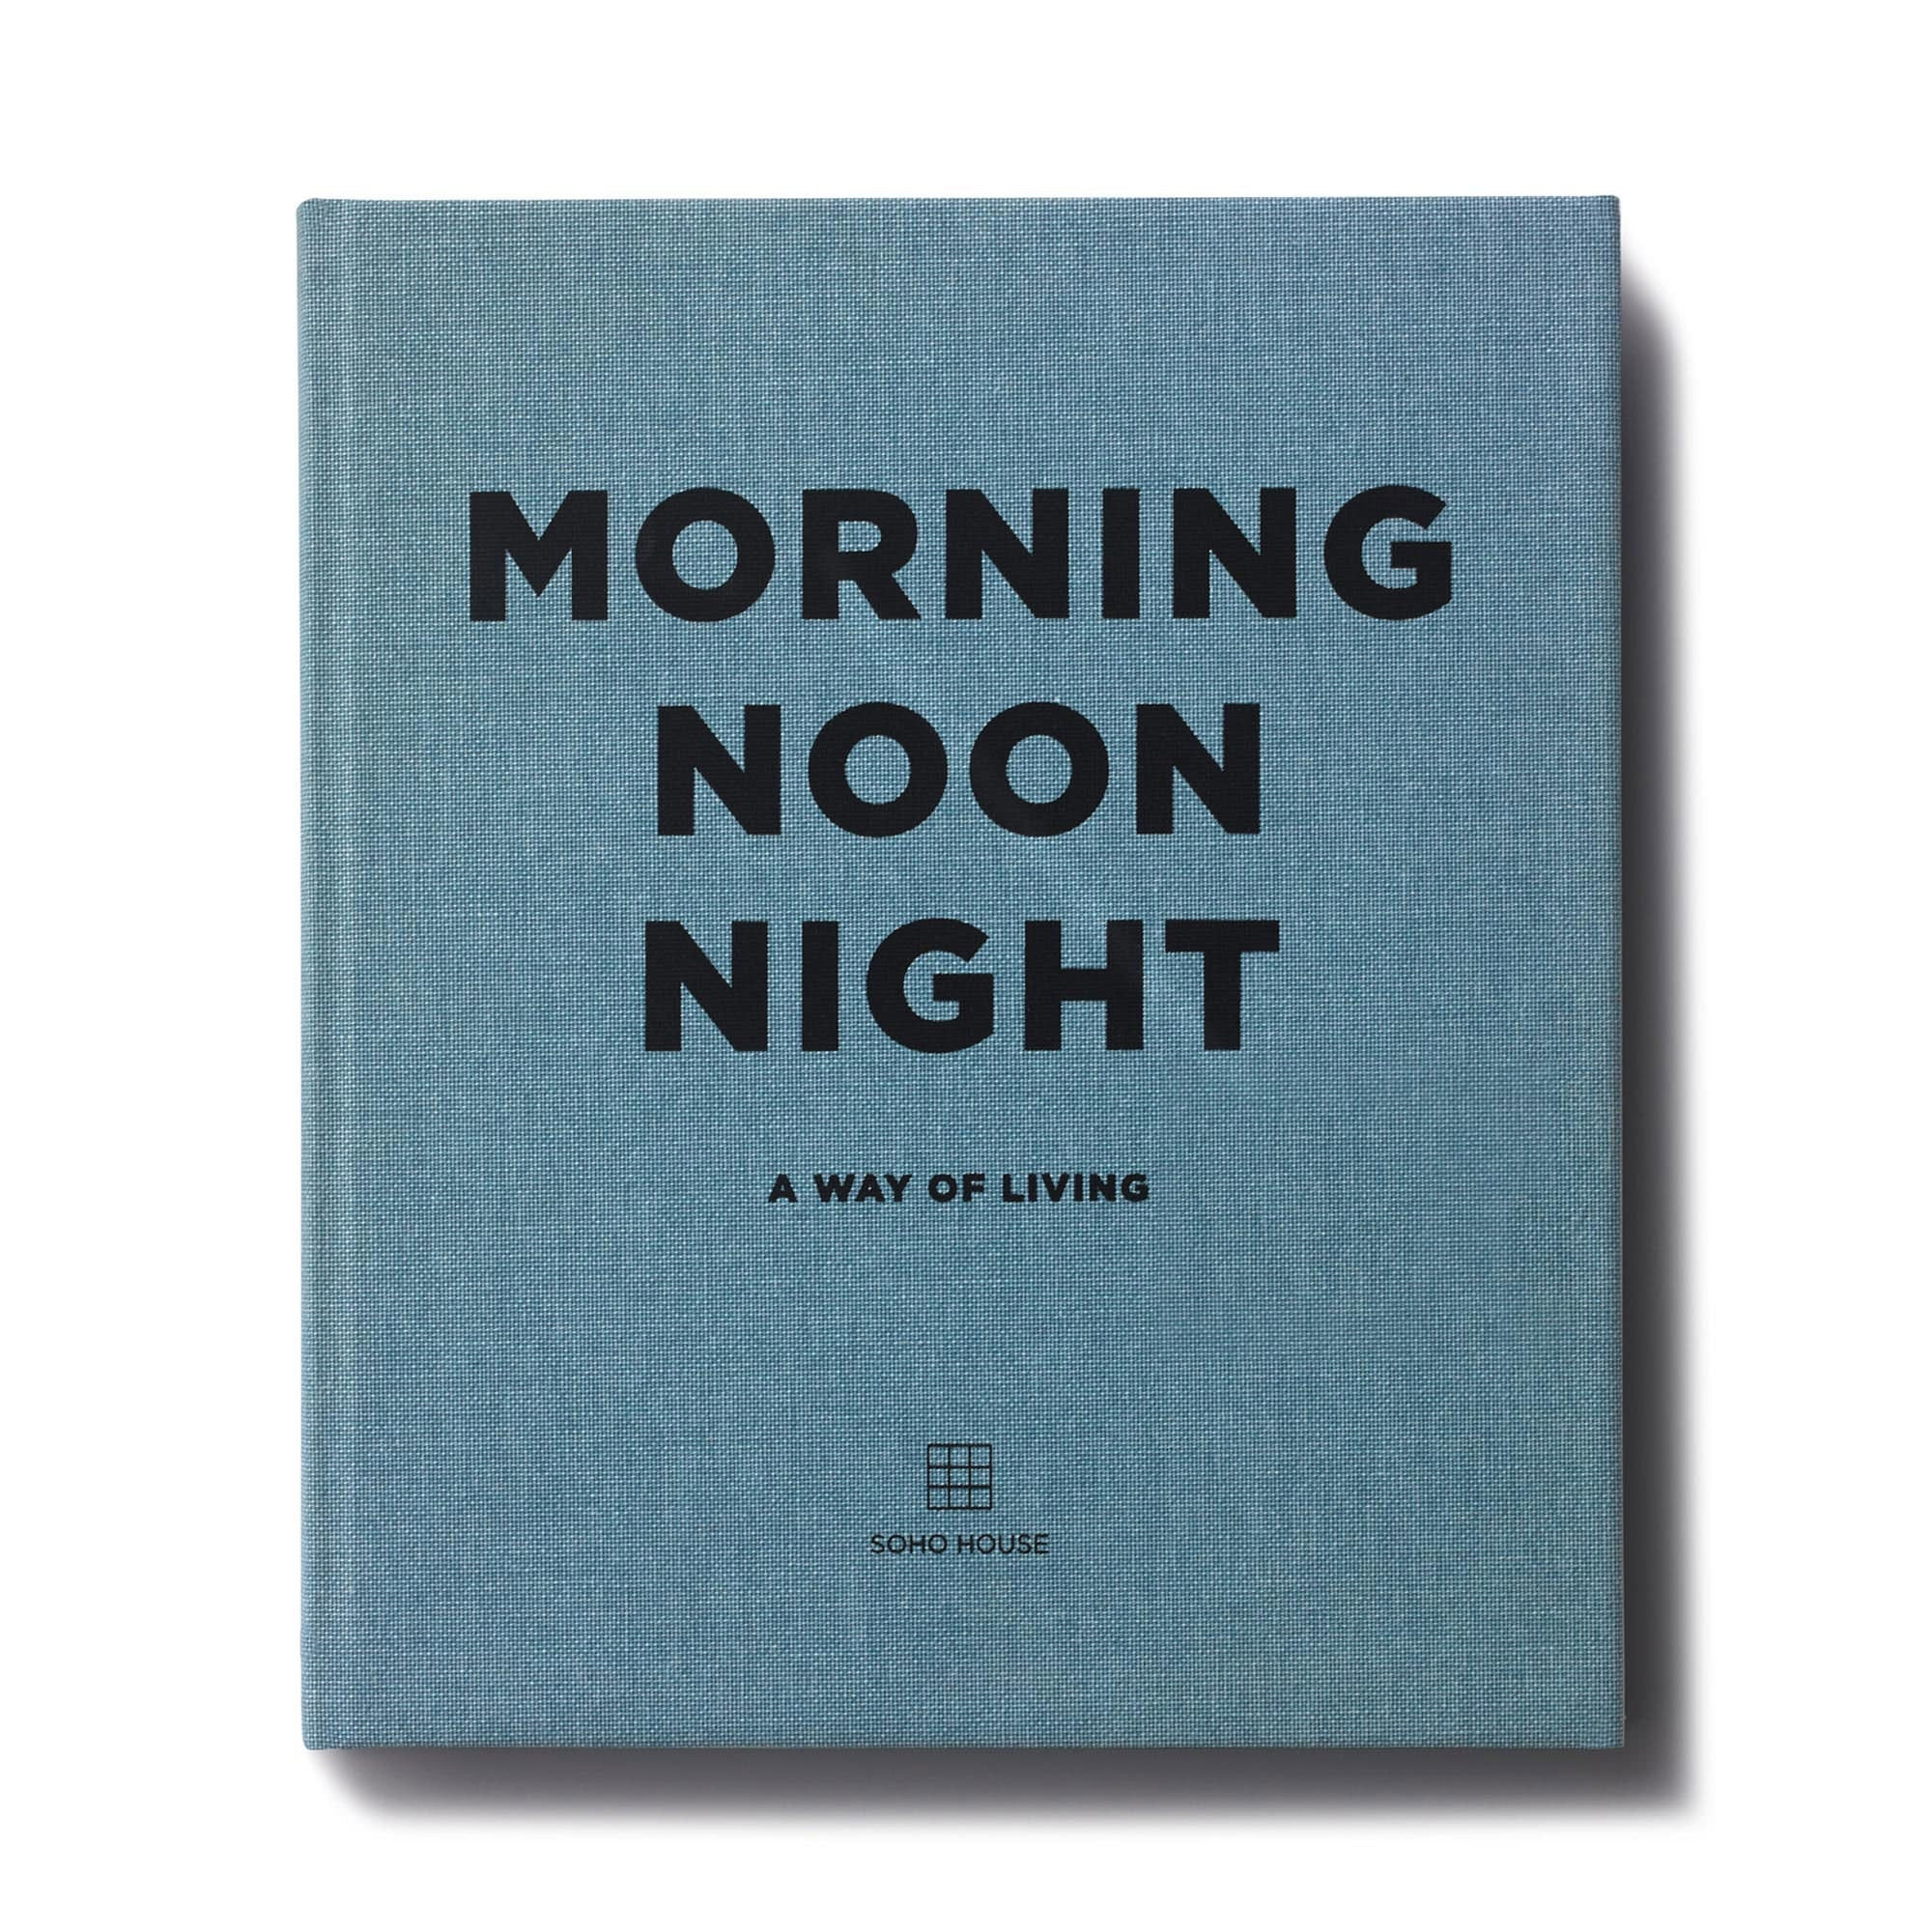 MORNING NOON NIGHT - SOHO HOUSE